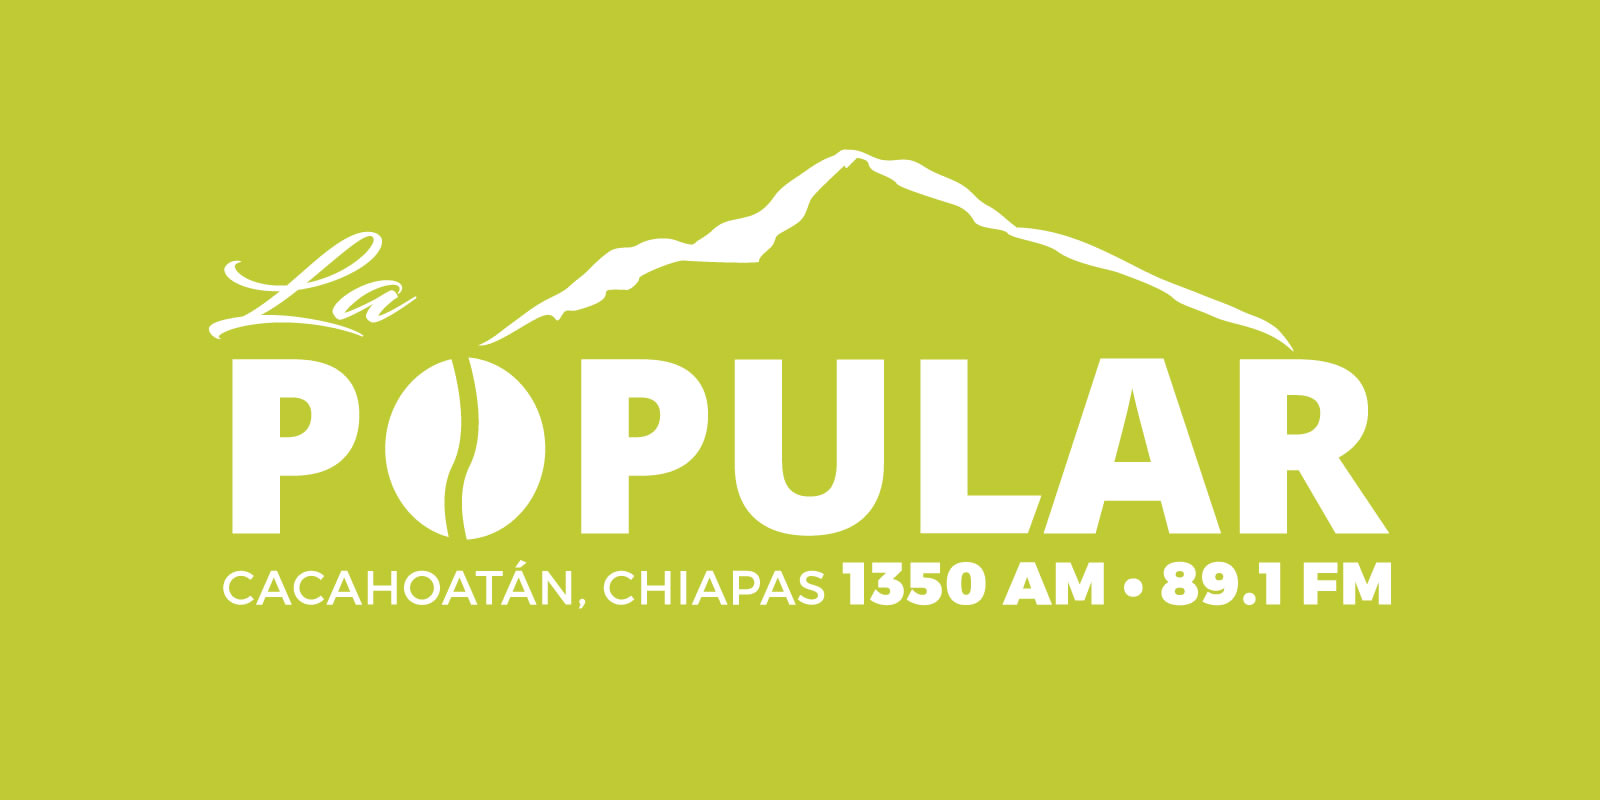 La Popular, 1350 AM, Cacahoatan, Chiapas